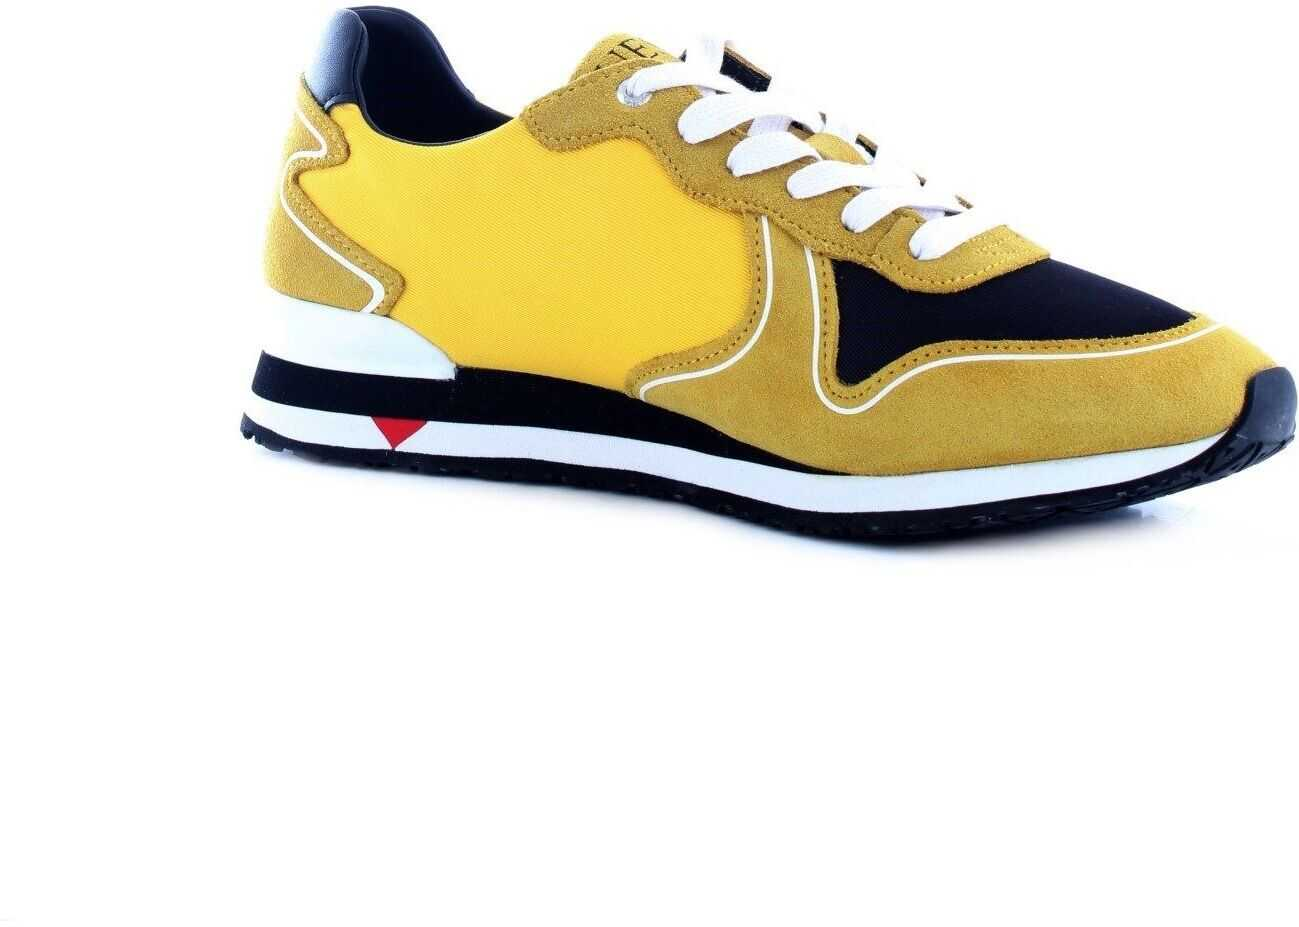 GUESS Suede Sneakers YELLOW